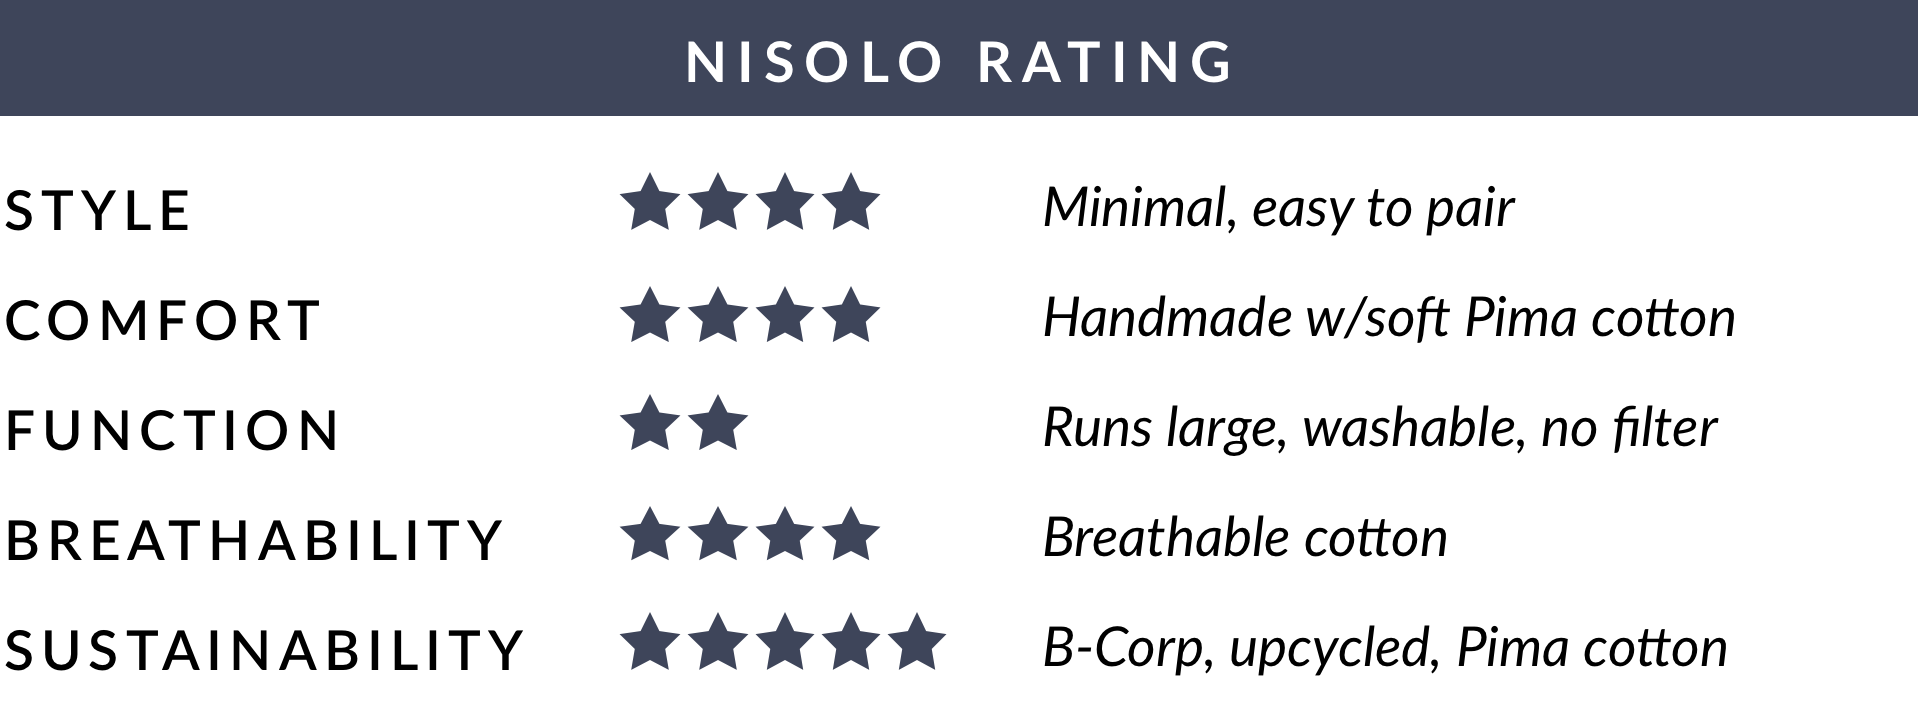 Nisolo Rating of KNOWN SUPPLY Upcycled Pima Cotton Face Covering - Assorted Colors (3) Pack - Average of 4.2 out of 5 stars